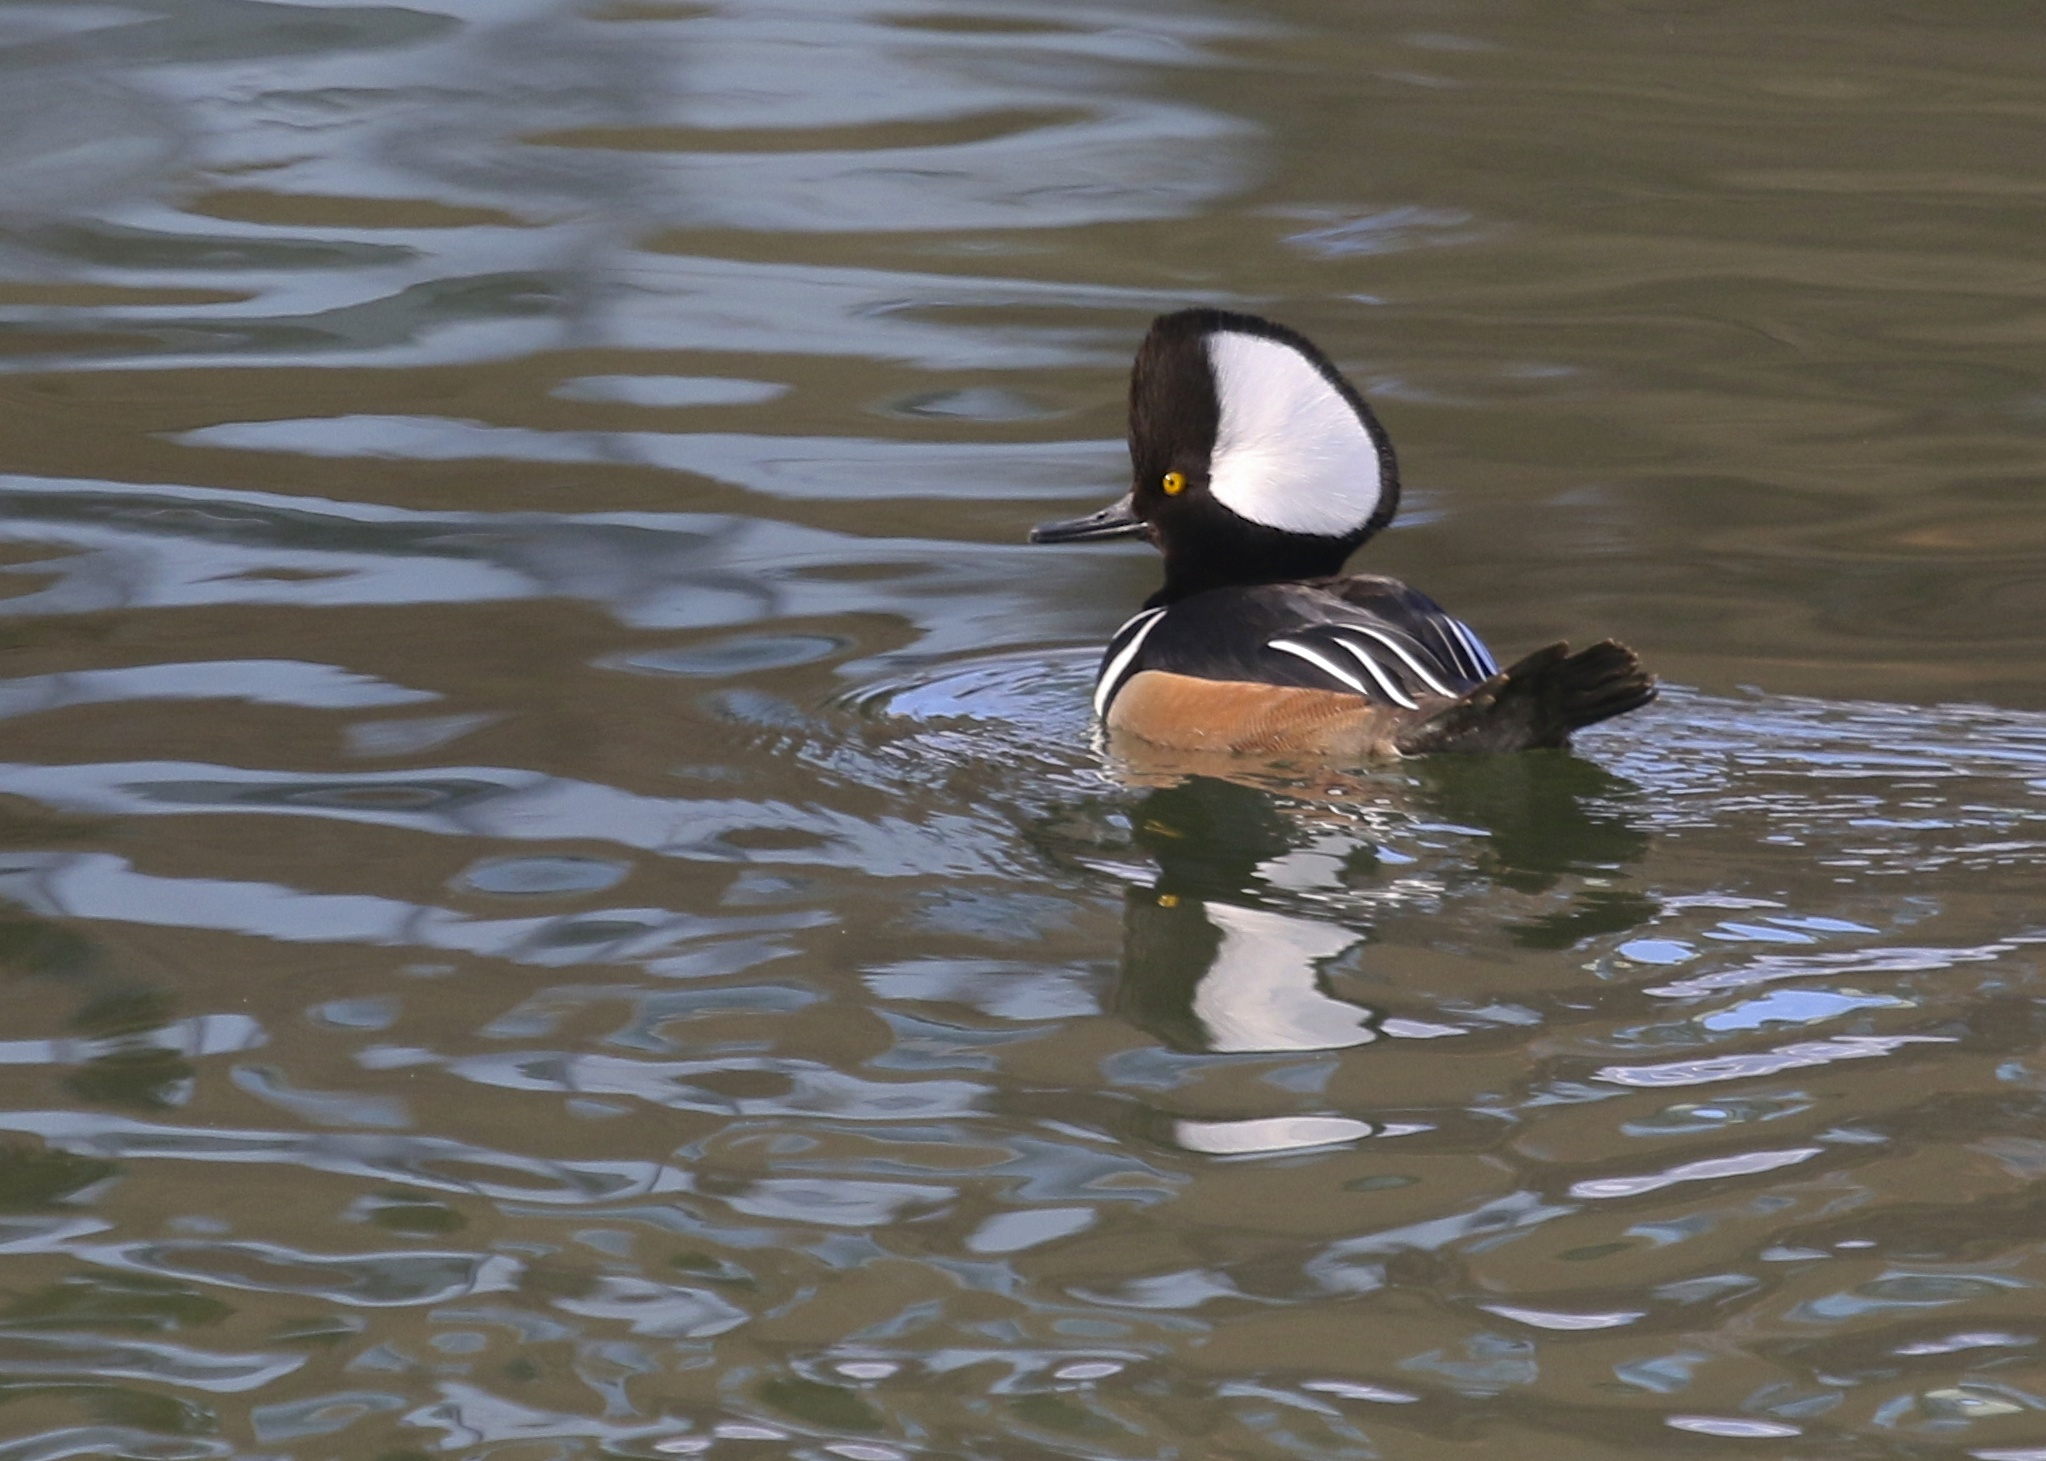 A male Hooded Merganser at Schervier Pavilion in Warwick NY, 3/11/14.